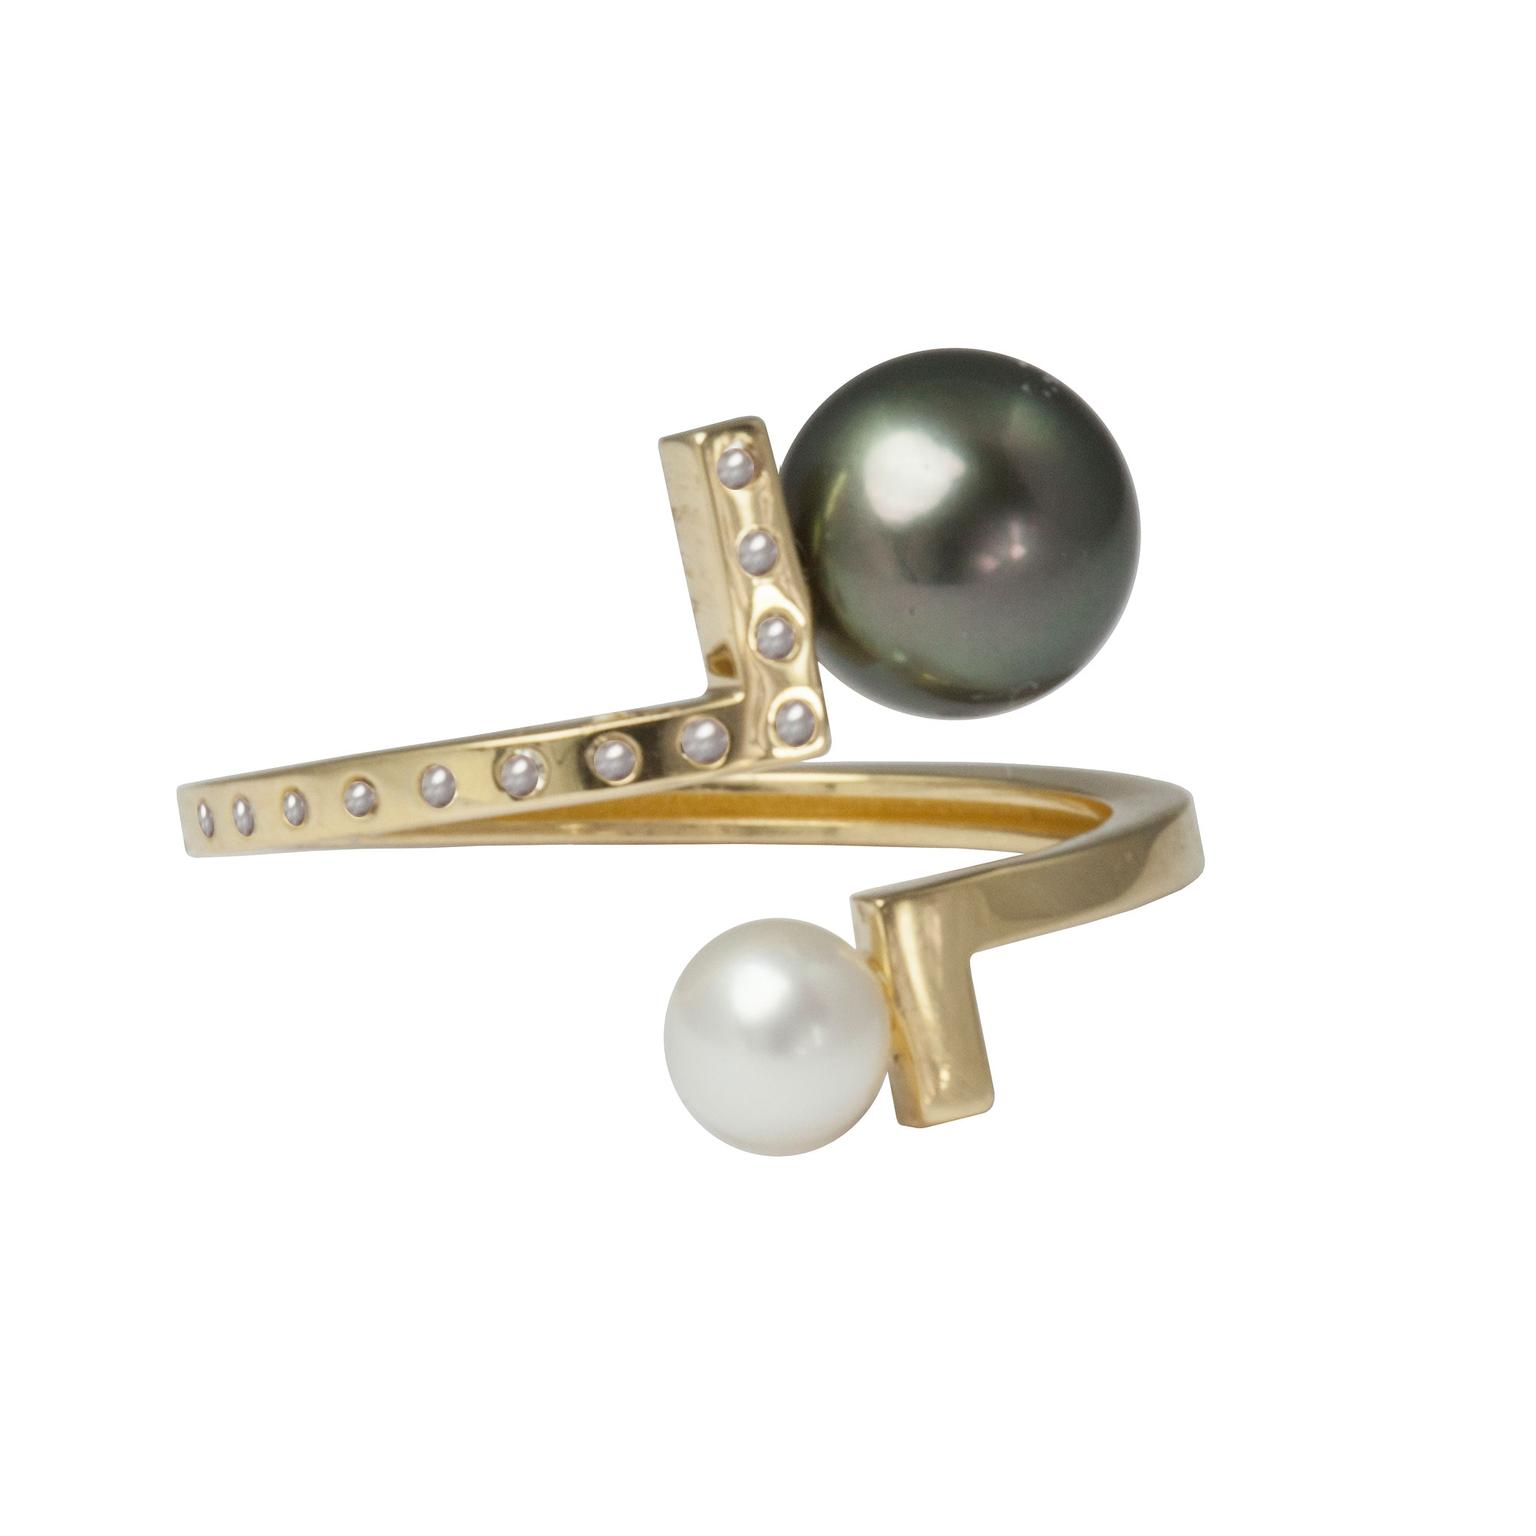 Kattri ring with diamond studded 18ct yellow gold band with a black Tahitian pearl and a white Akoya pearl